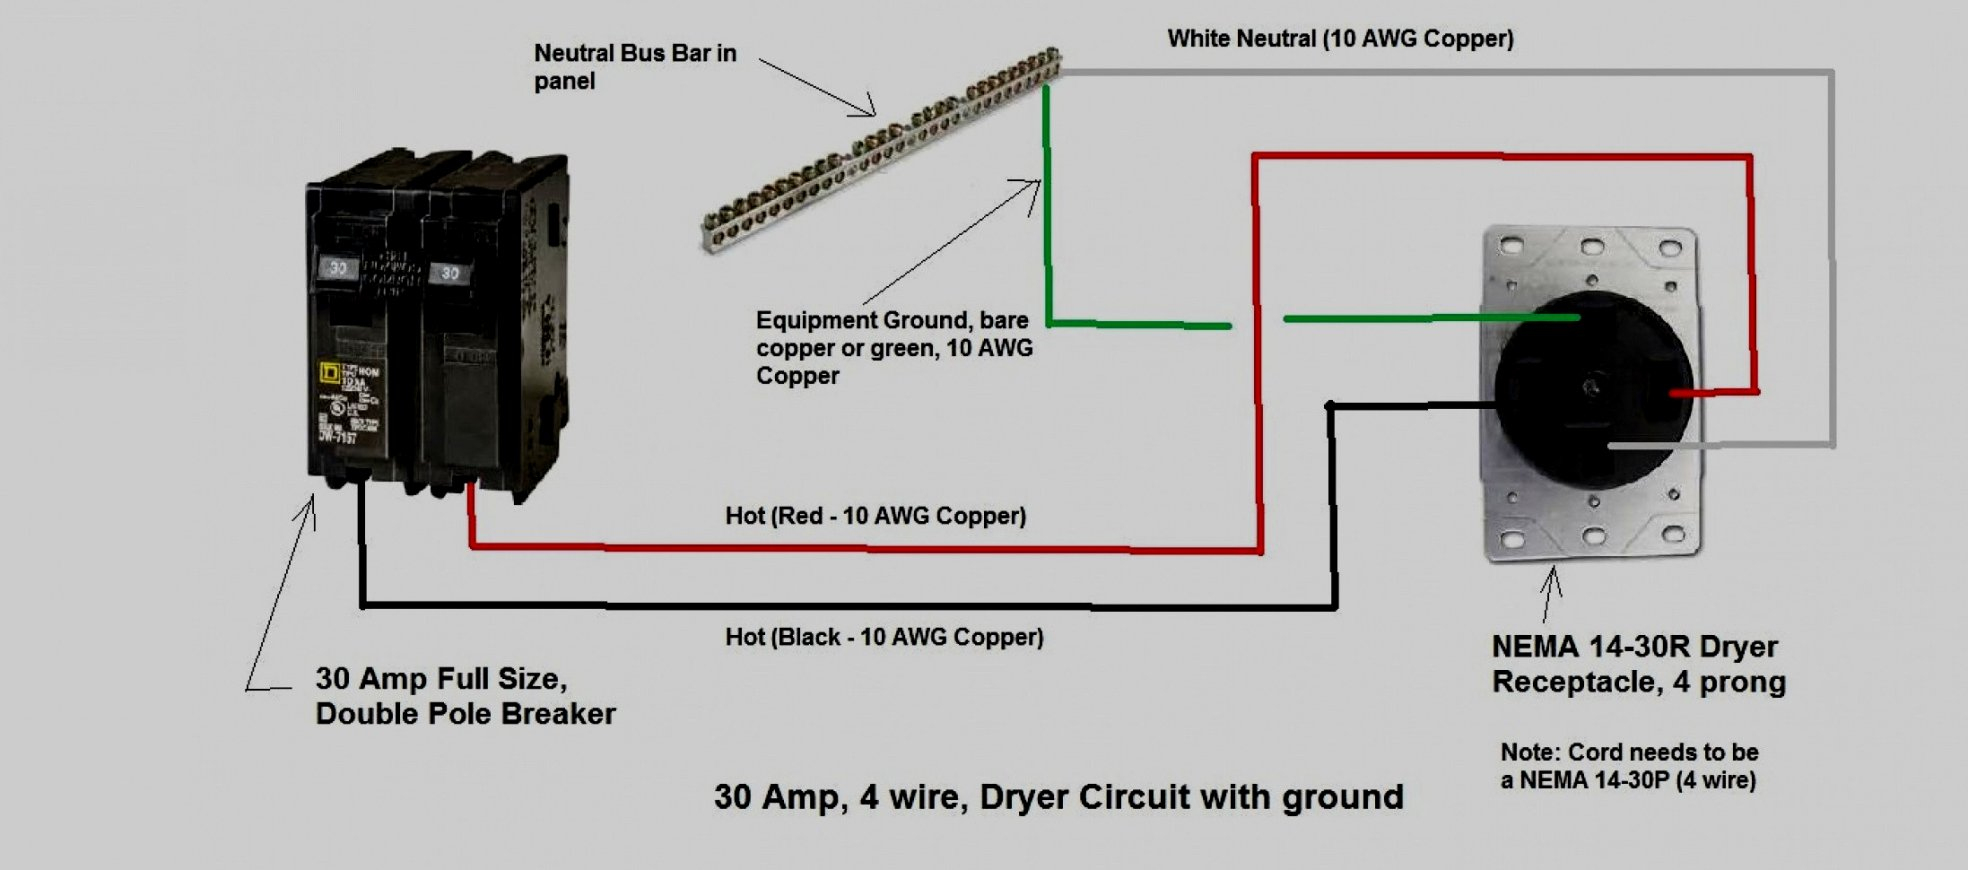 4 Prong 250Vac Wiring Diagram | Wiring Diagram - 220 Wiring Diagram